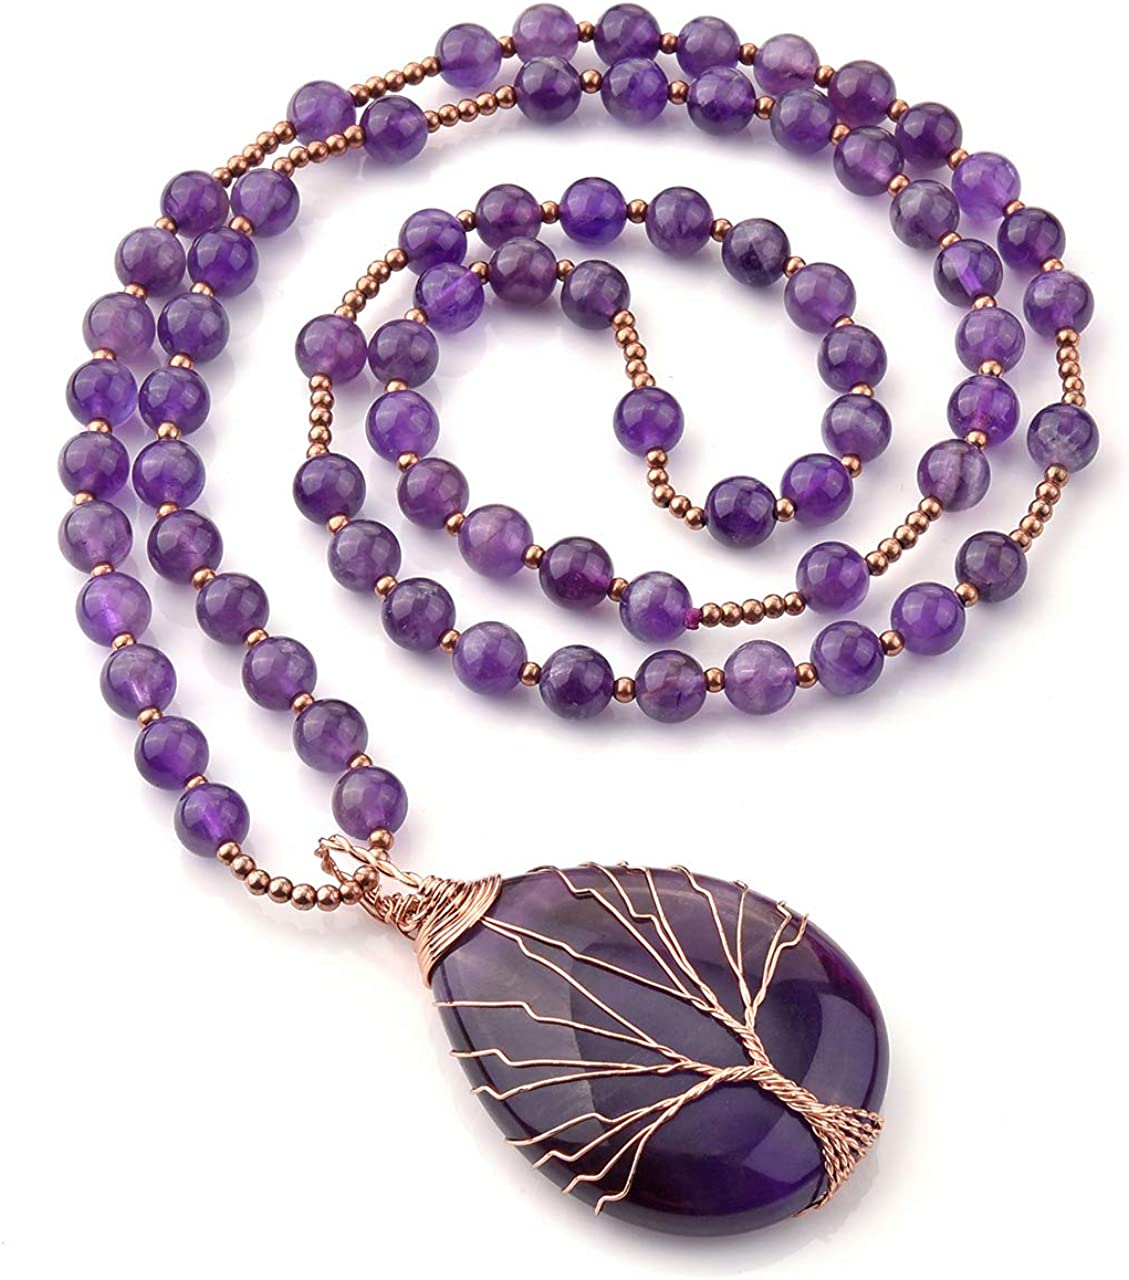 Top Plaza Natural Stone Beads Healing Crystal Necklace Tree of Life Wire Wrapped Teardrop Gemstone Pendant Jewelry for Womens Girls Mother